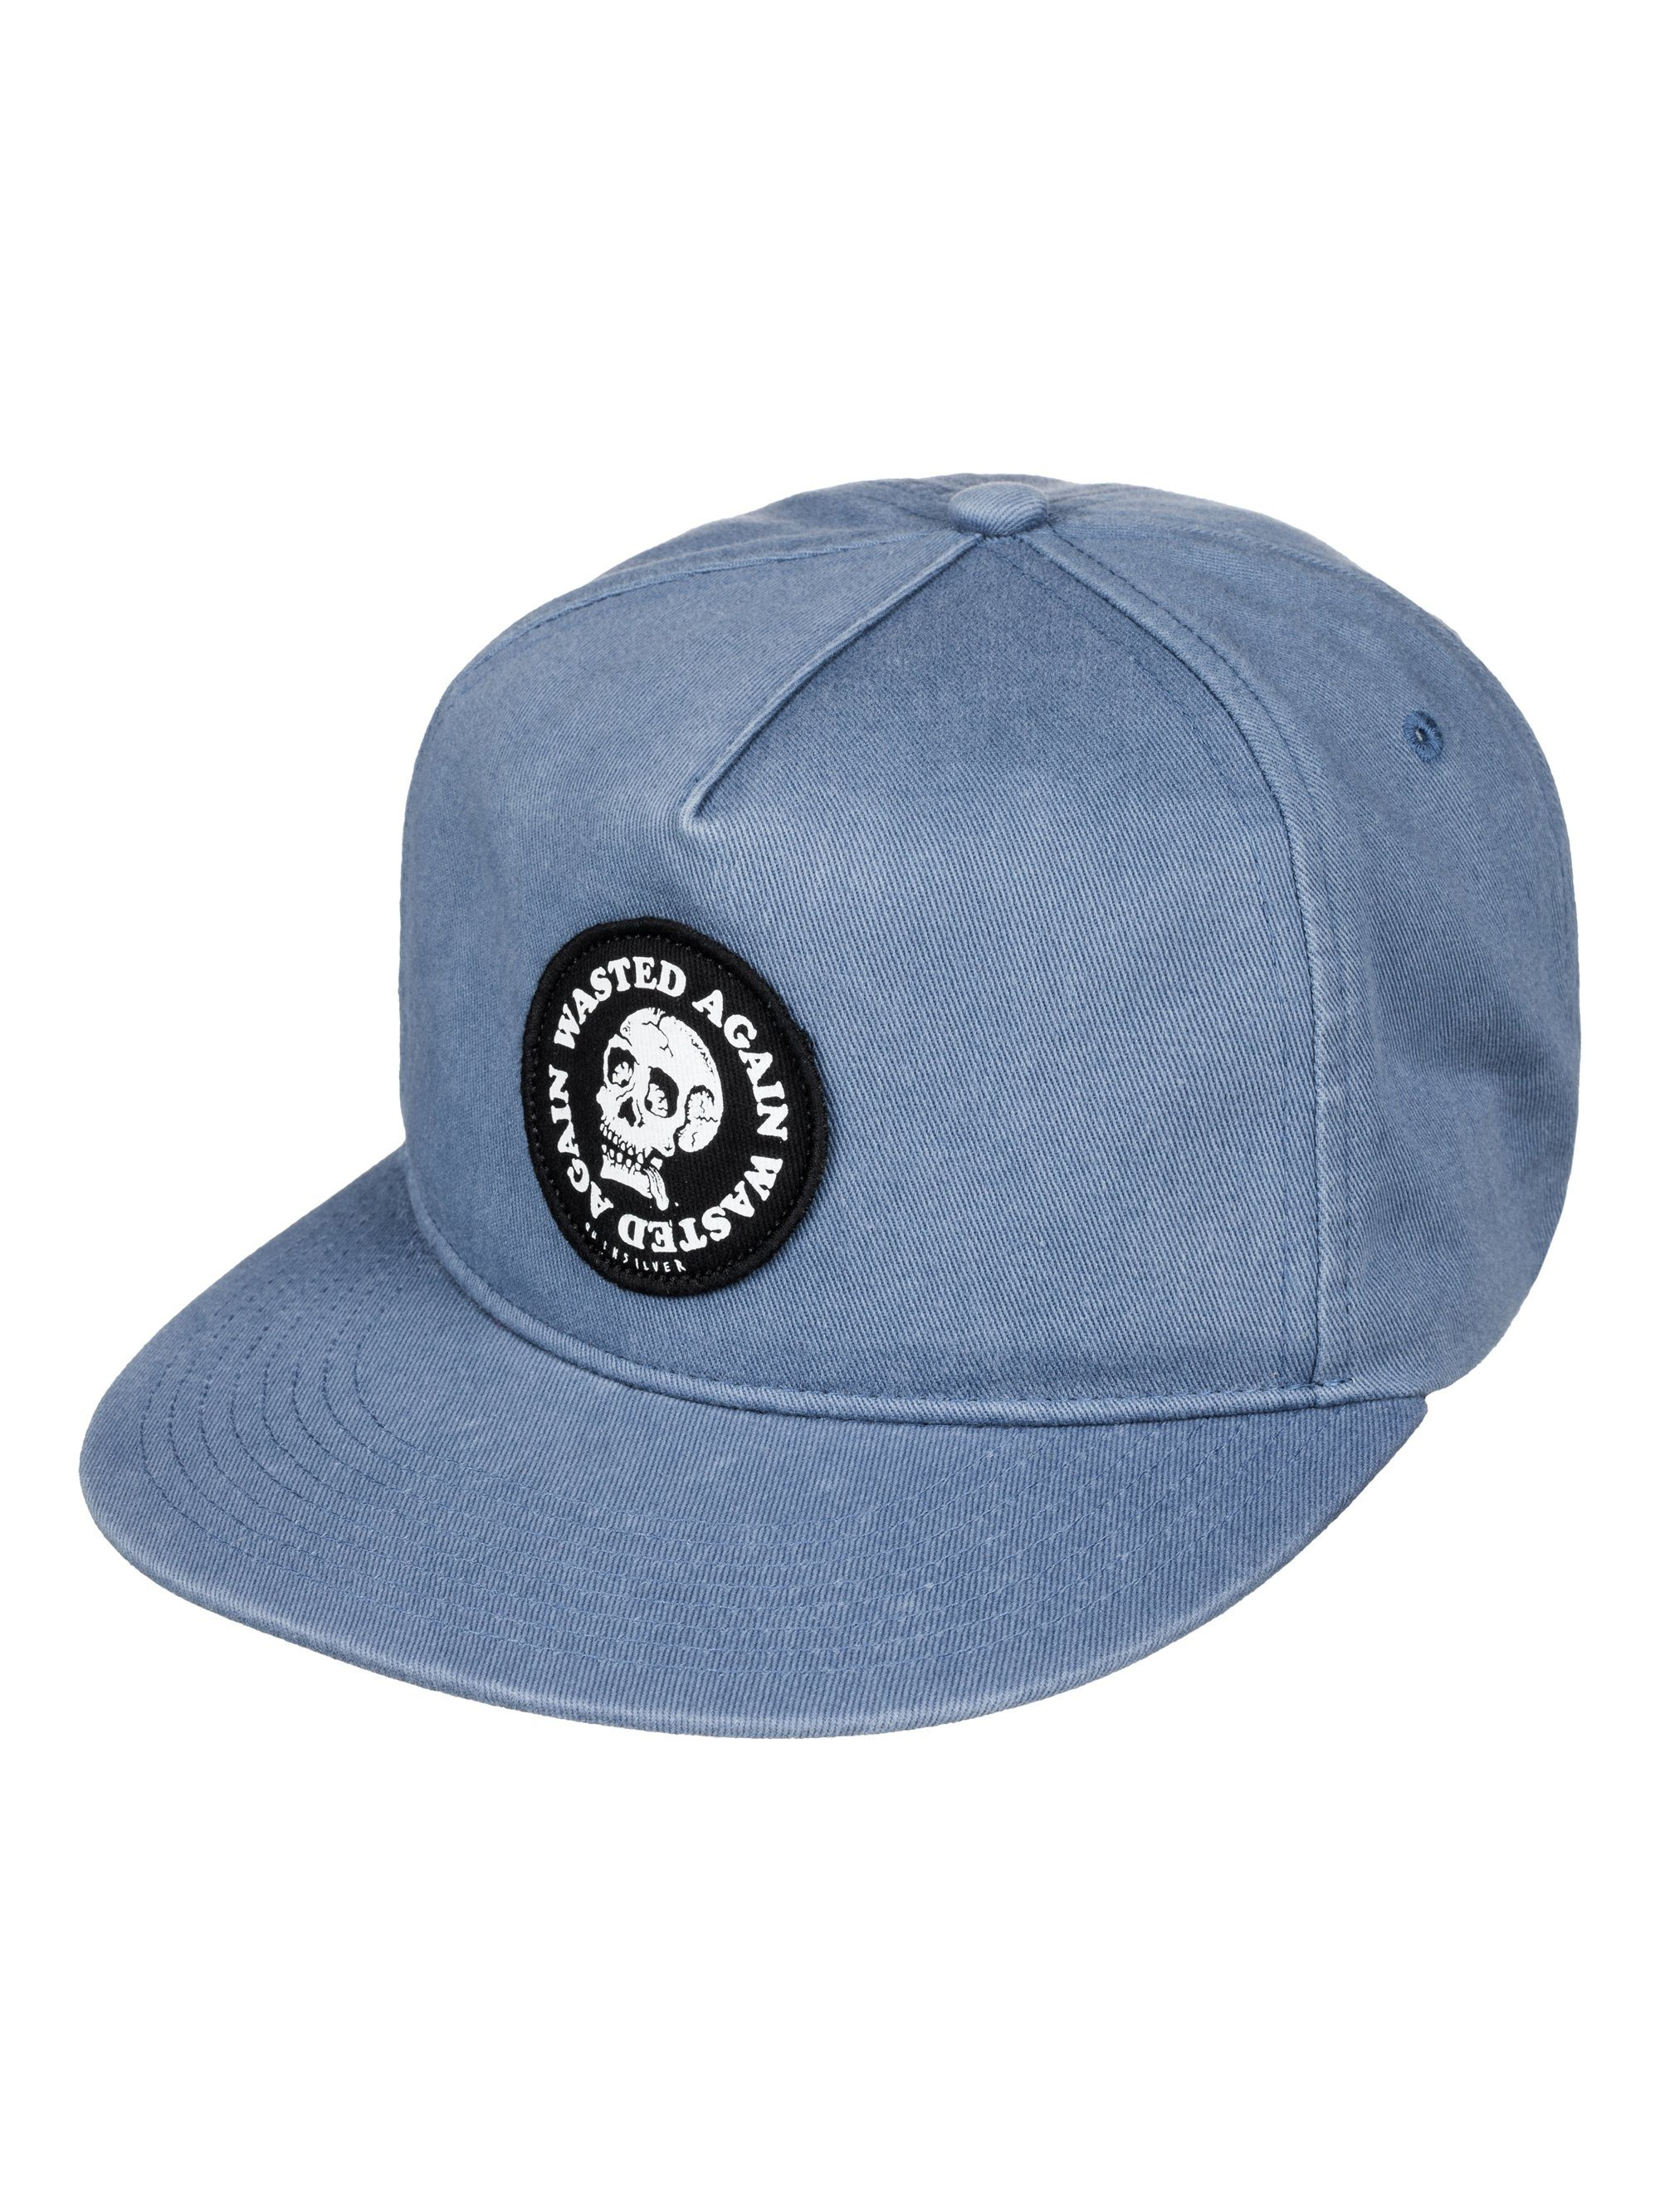 Quiksilver Trucker Cap »Bad News«